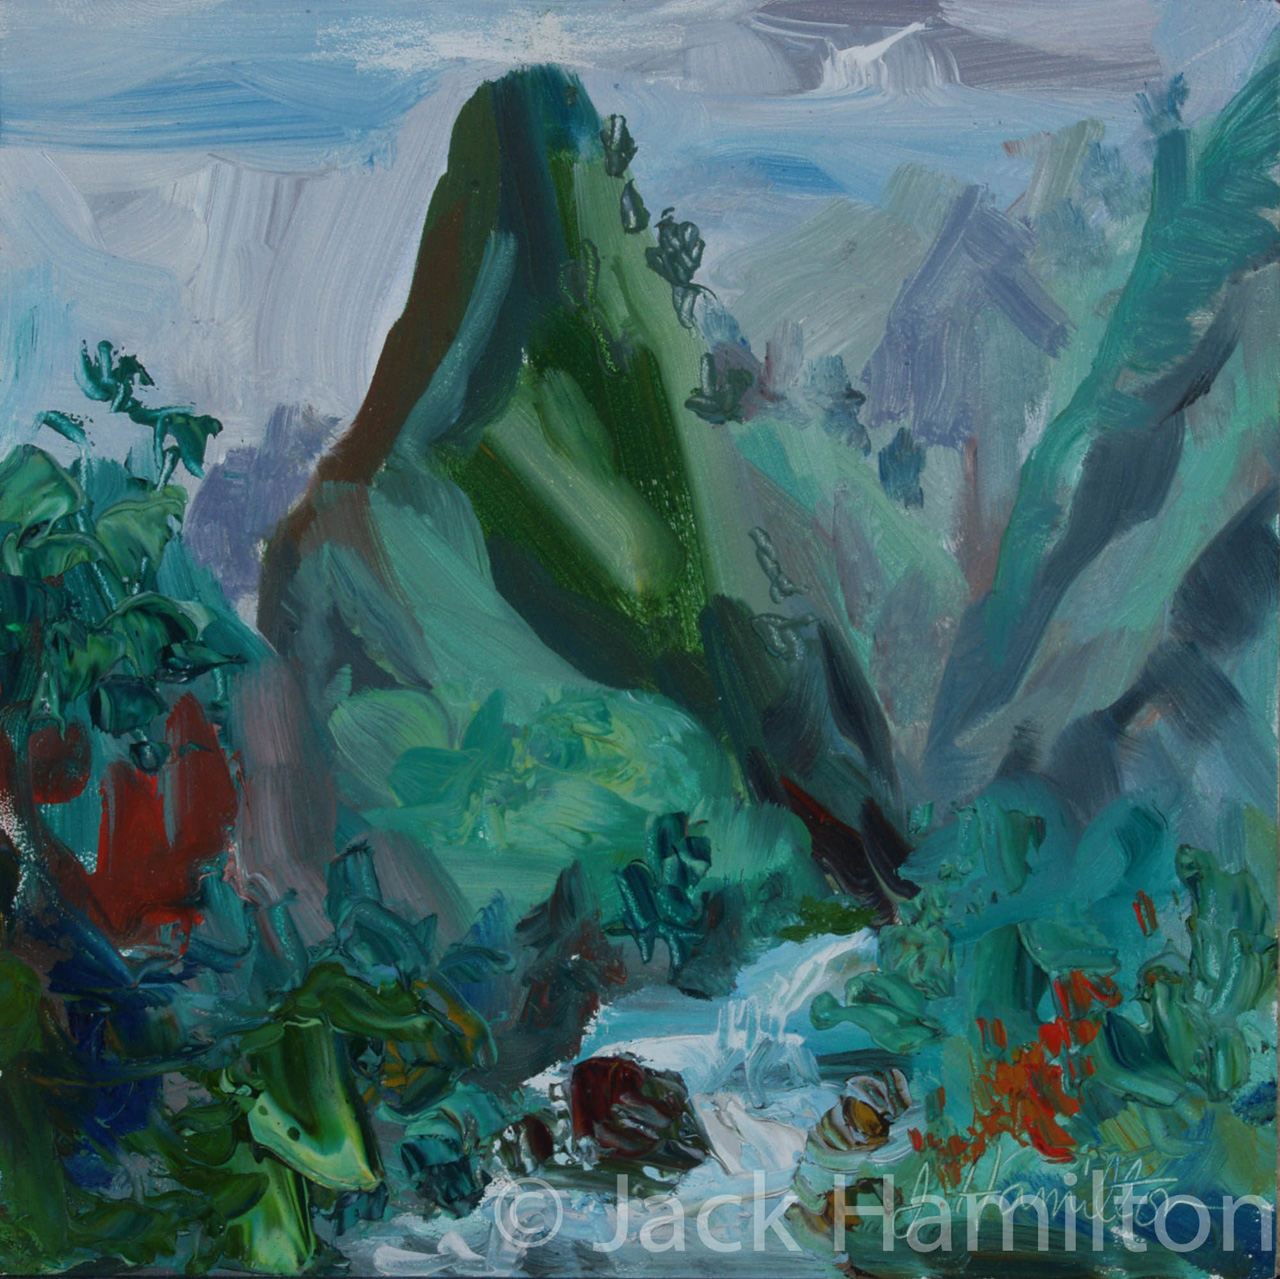 Iao Needle With Stream by Jack Hamilton oil in canvas